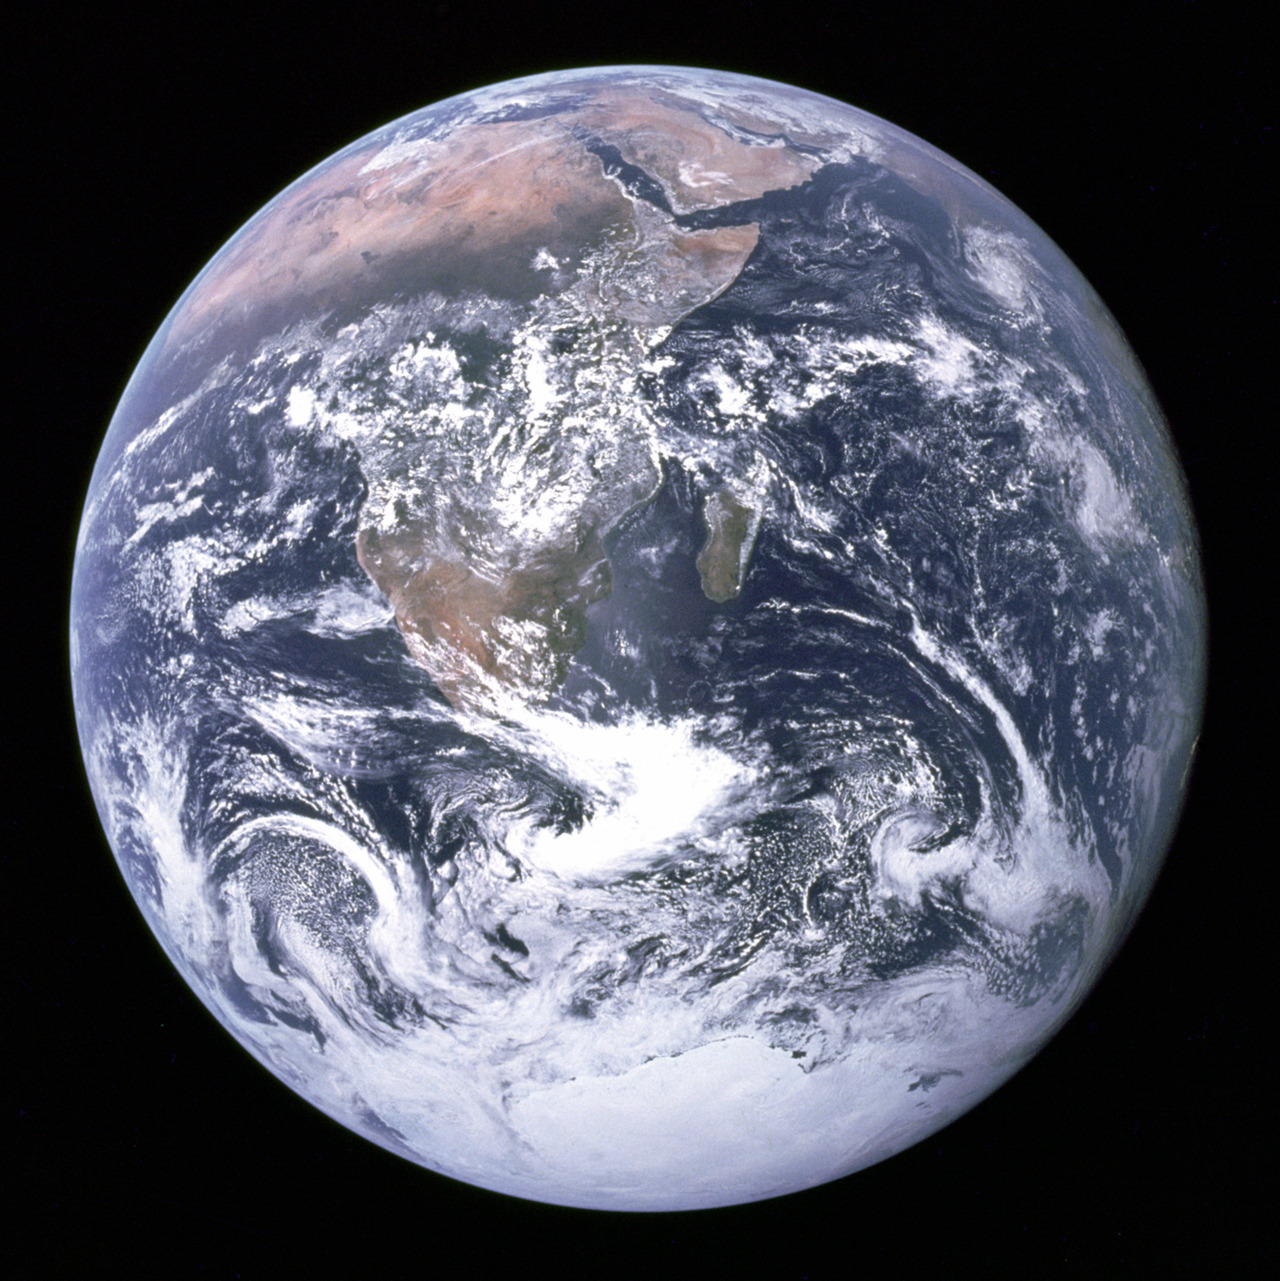 "The original Blue Marble photograph, with caption…""View of the Earth as seen by the Apollo 17 crew traveling toward the moon. This translunar coast photograph extends from the Mediterranean Sea area to the Antarctica south polar ice cap. This is the first time the Apollo trajectory made it possible to photograph the south polar ice cap. Note the heavy cloud cover in the Southern Hemisphere. Almost the entire coastline of Africa is clearly visible. The Arabian Peninsula can be seen at the northeastern edge of Africa. The large island off the coast of Africa is Madagascar. The Asian mainland is on the horizon toward the northeast."" Apollo 11"